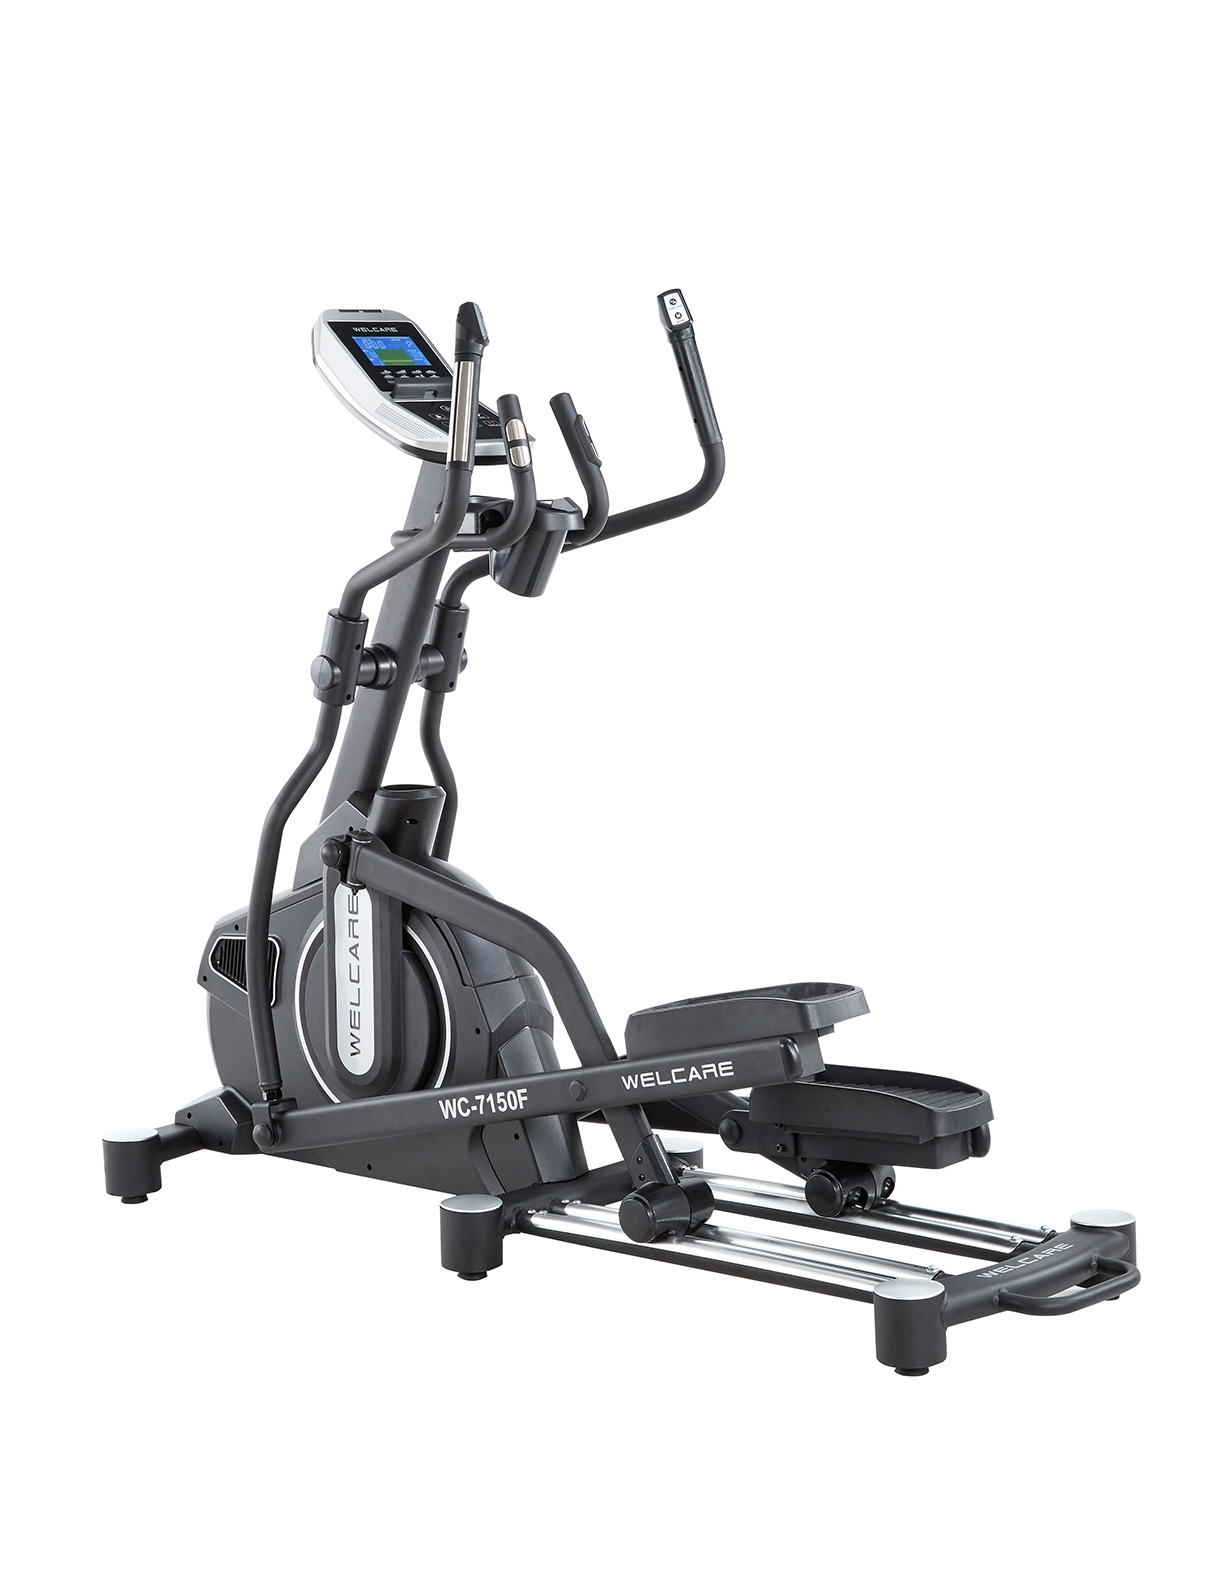 WC 7150F ELIPTICAL CROSS TRAINER